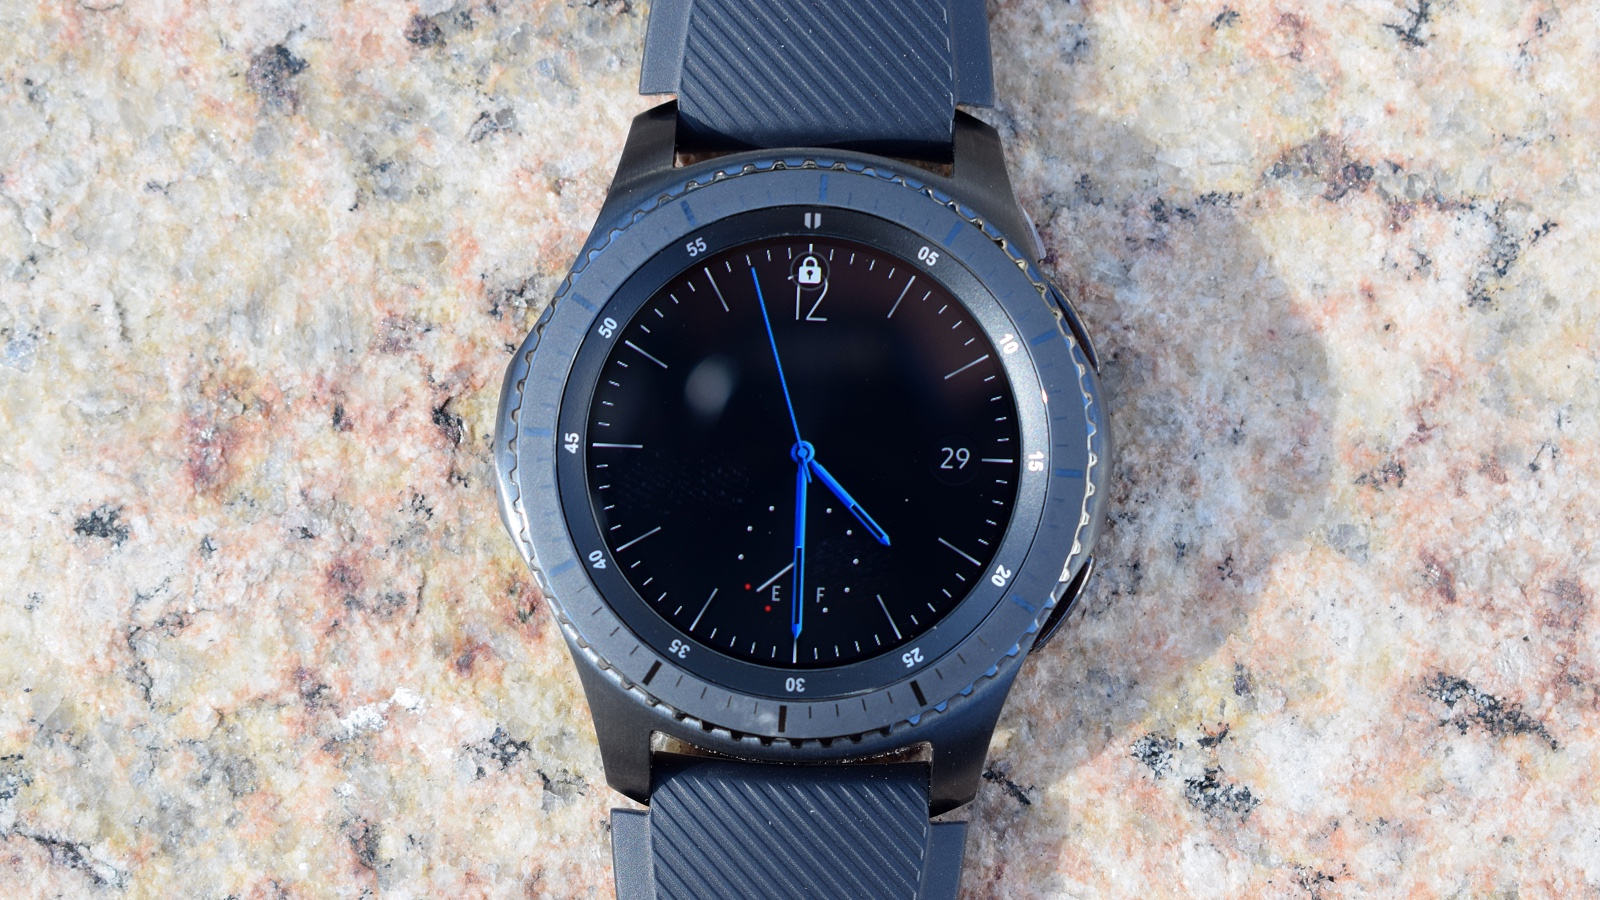 samsung watch gear s3 review